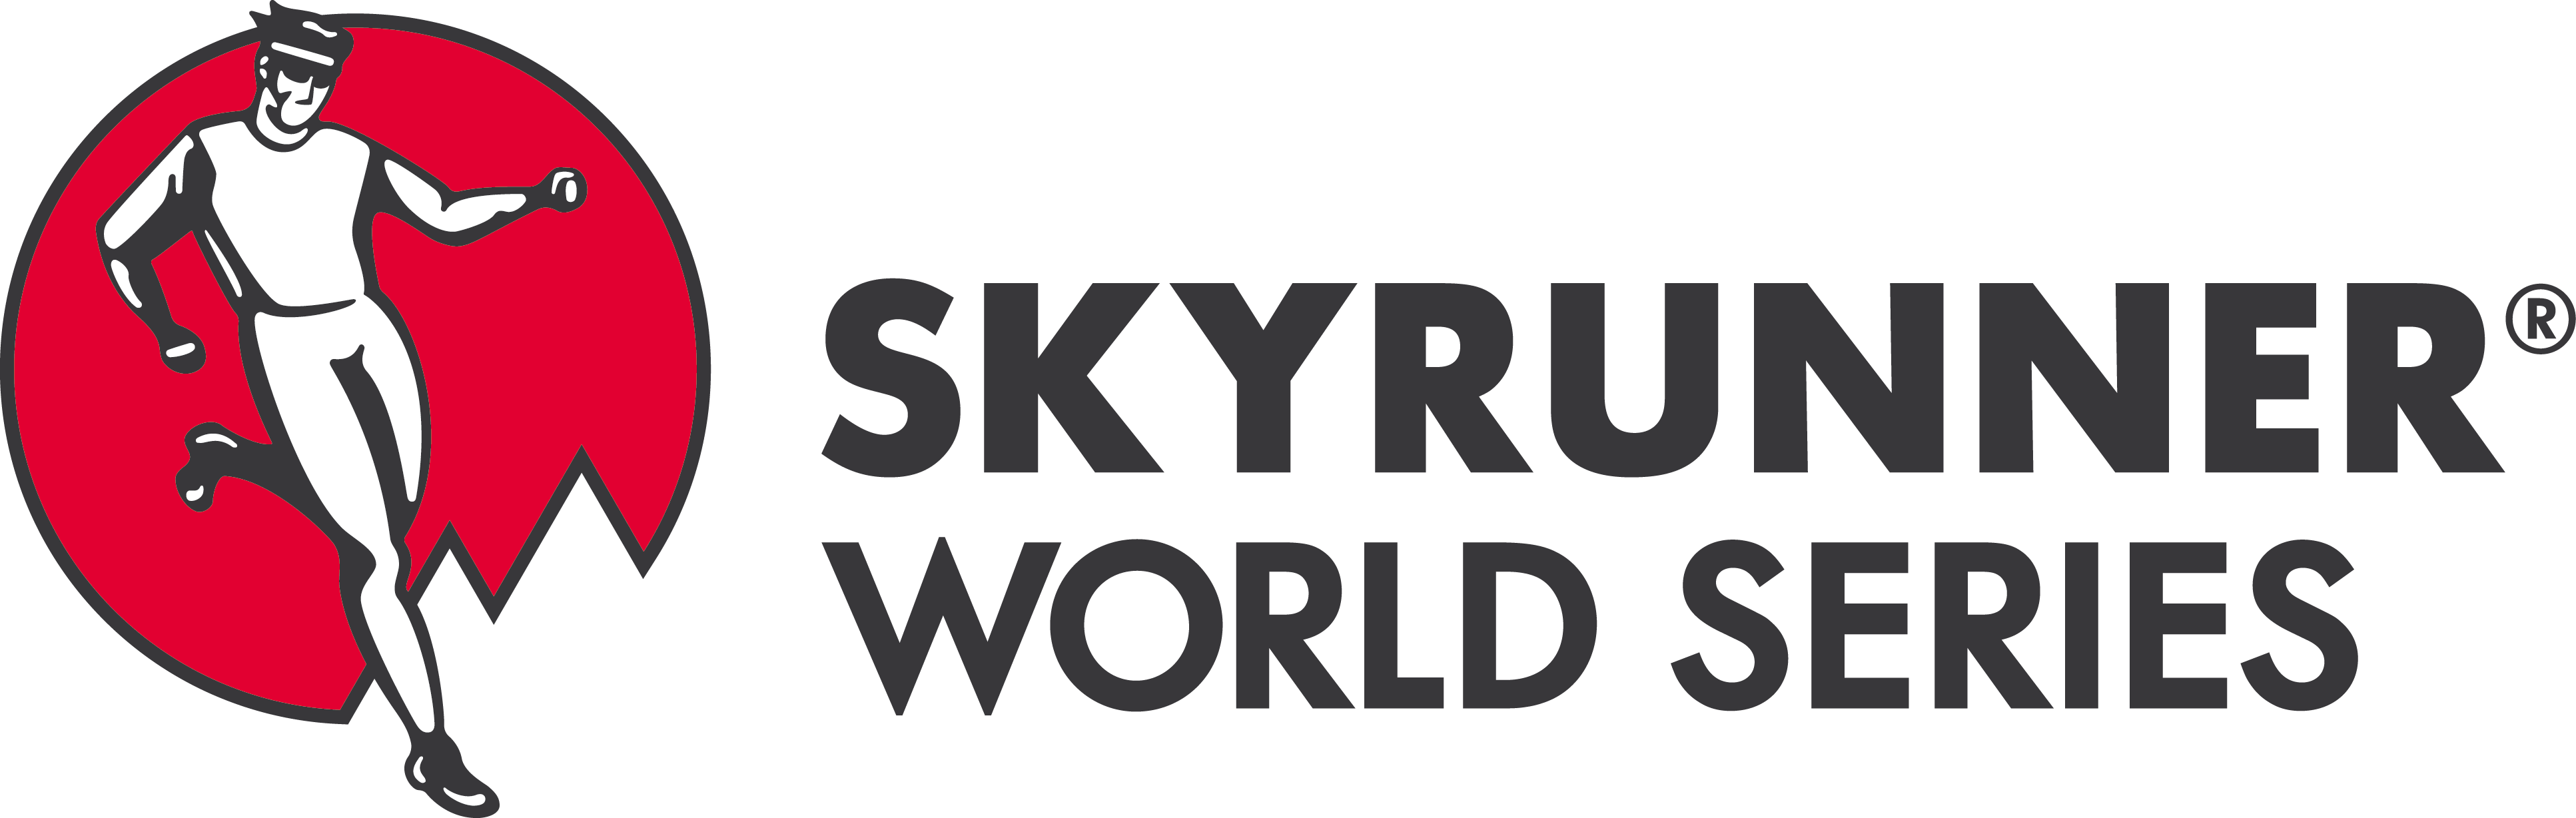 Skyrunner® World Series